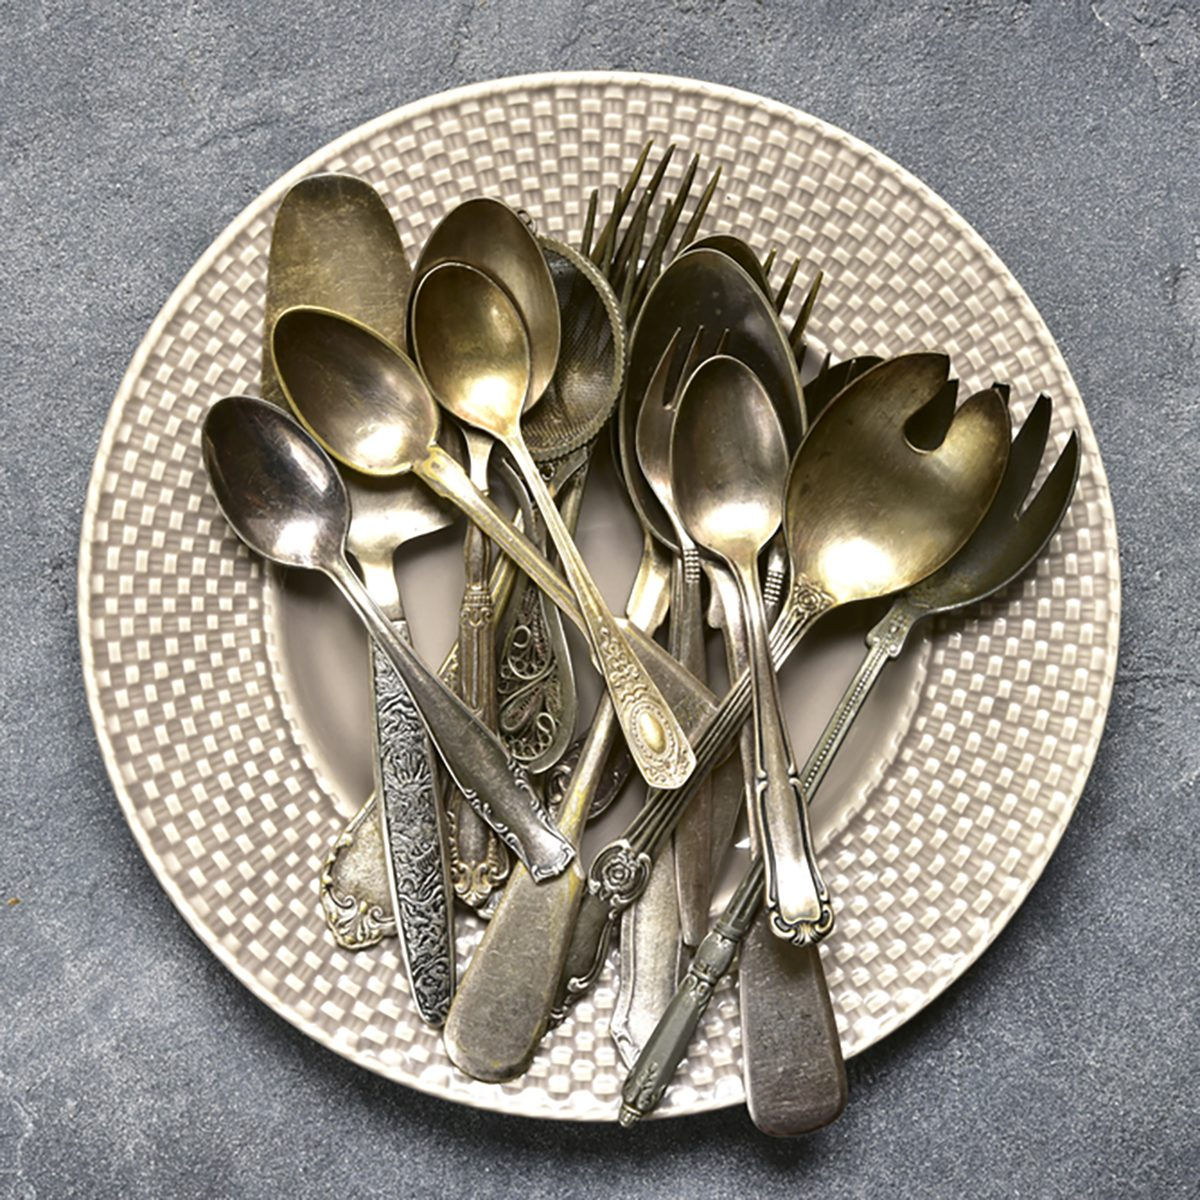 Vintage silverware on a plate over dark grey slate,stone or concrete background.